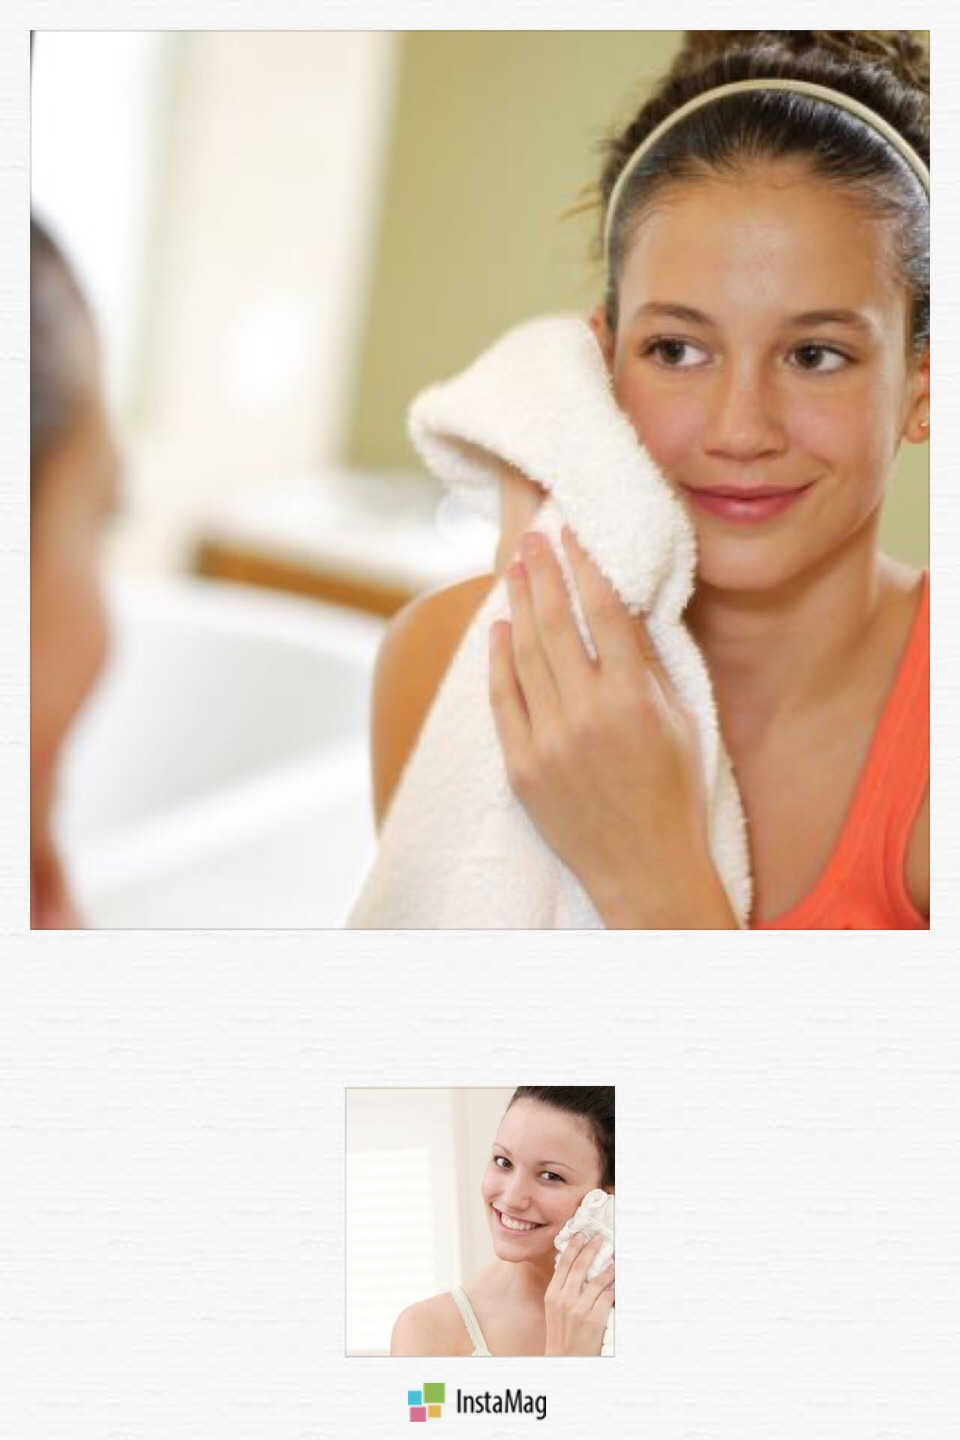 --> Press your face against a warm, damp towel and wipe away any residue.